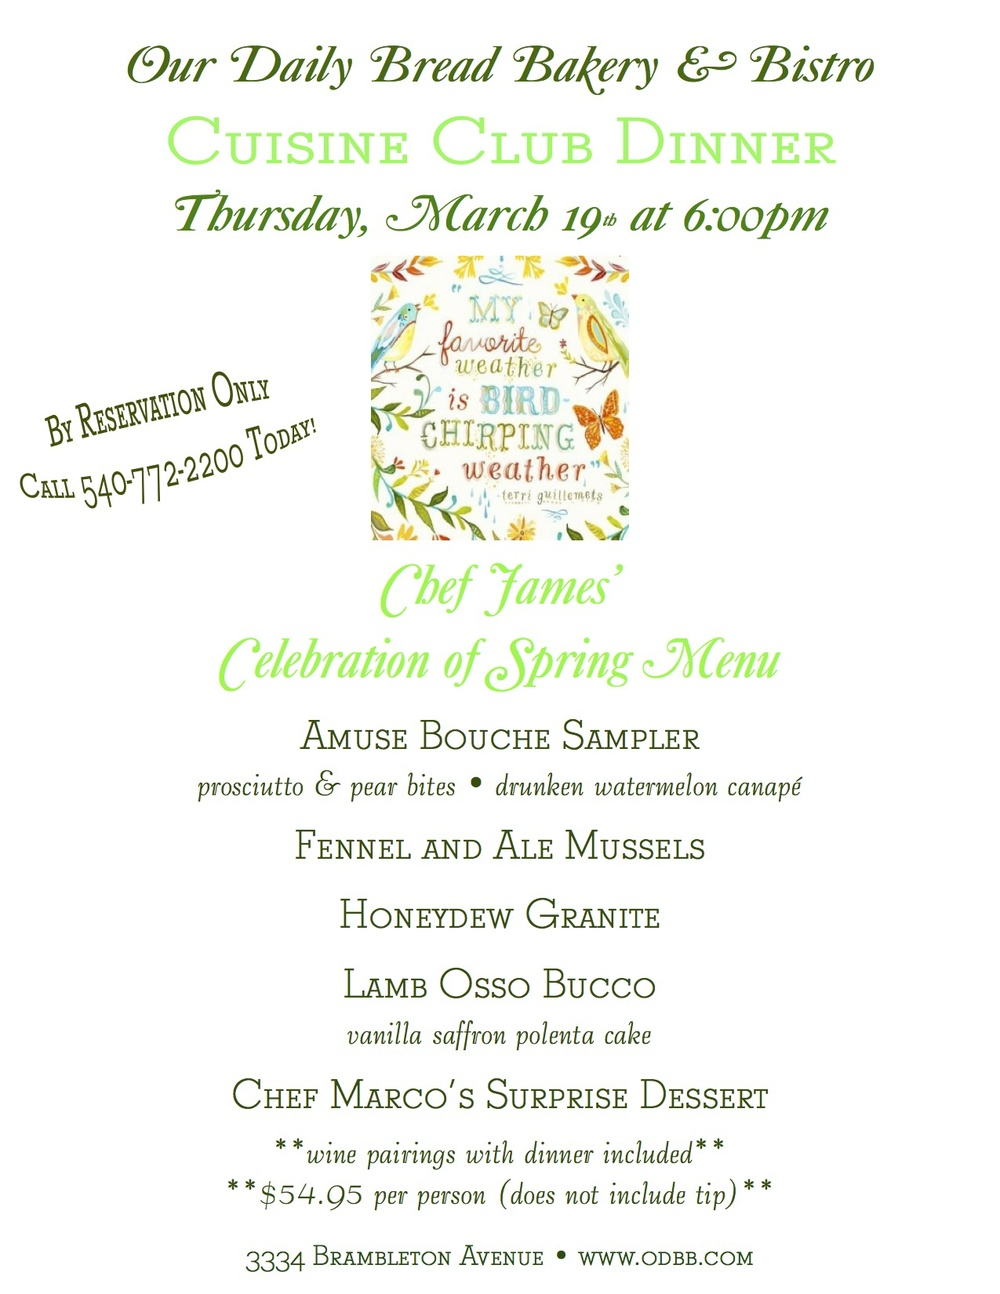 March Cuisine Club Dinner 2015 FOR ROANOKE.jpg